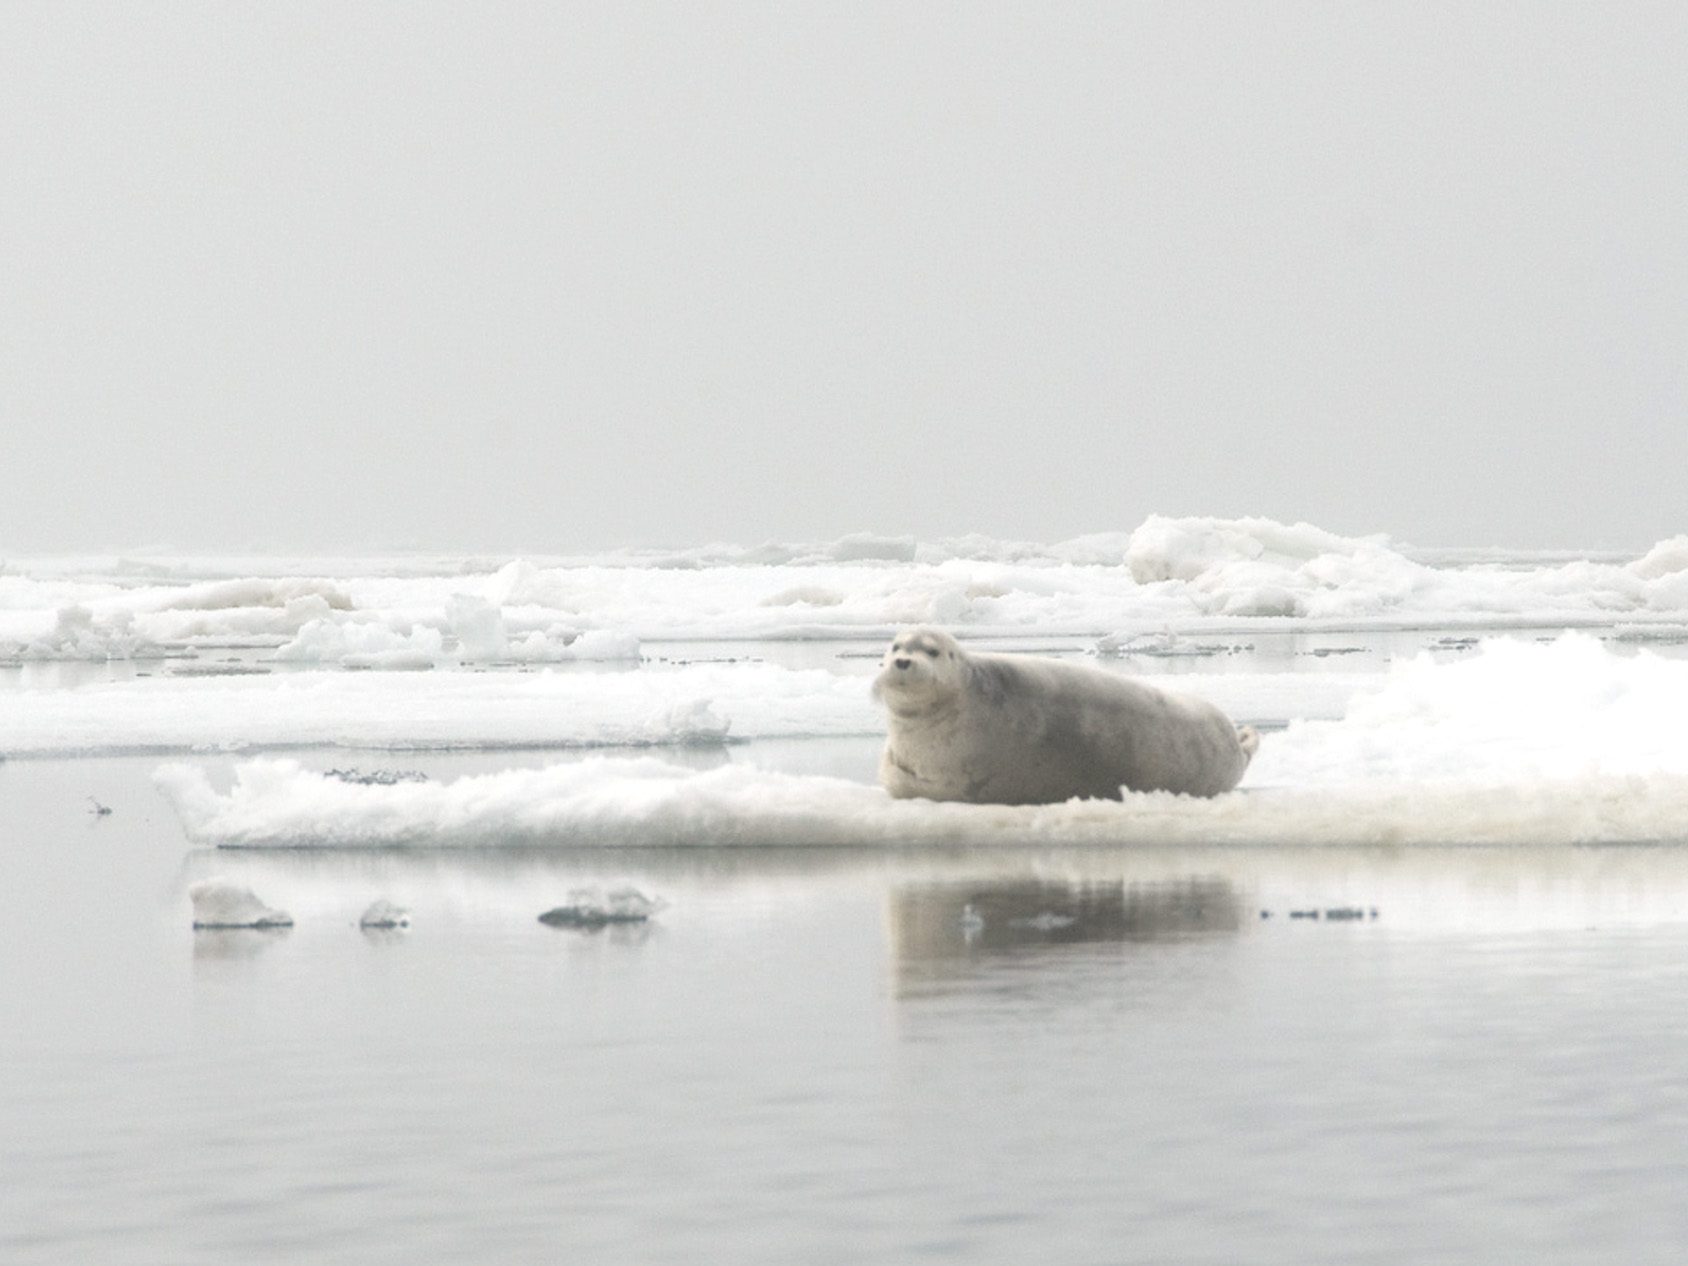 A high concentration of bearded seals reside amid the ice leads of the Chukchi Corridor, foraging around Hanna Shoal in summer, and migrating through Barrow Canyon in winter and spring.